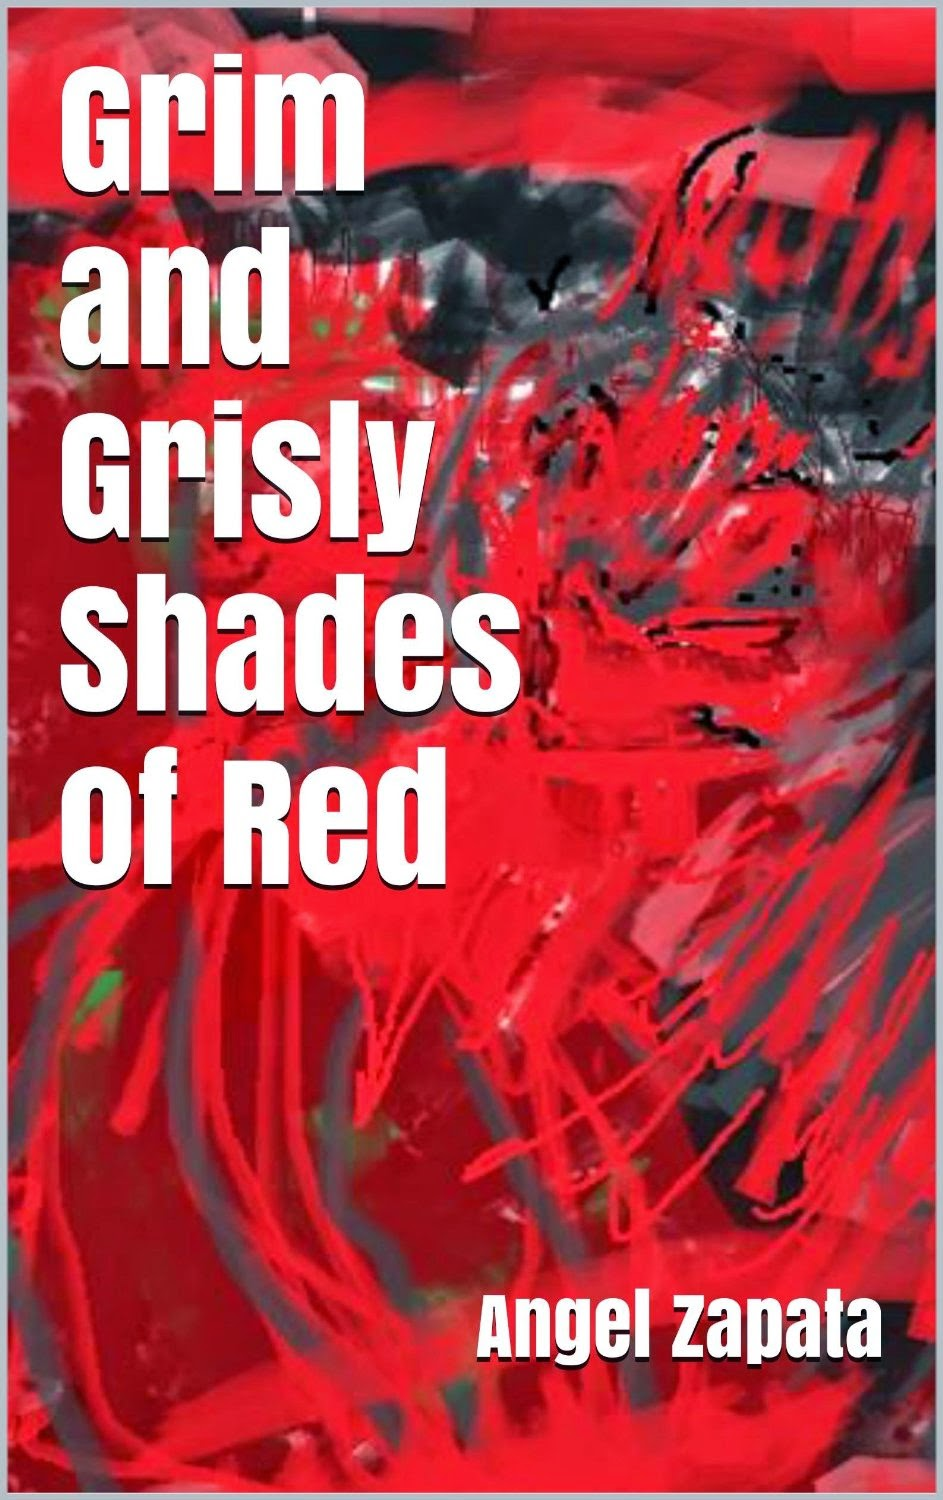 Grim and Grisly Shades of Red